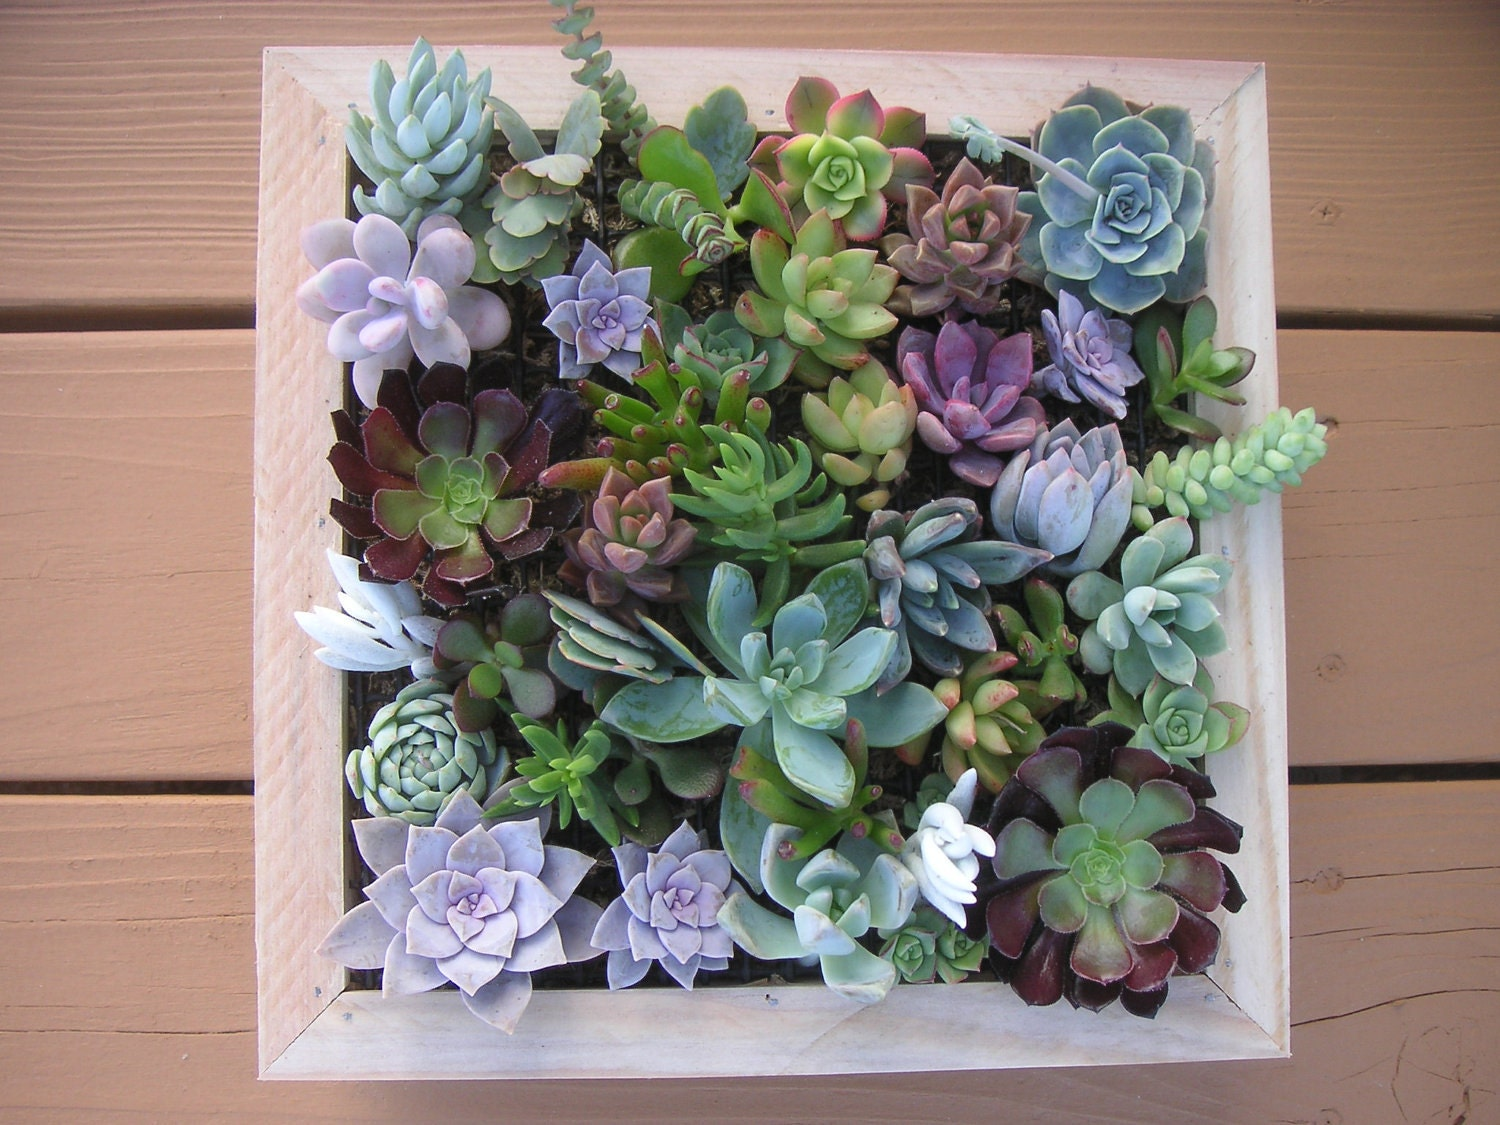 Complete Succulent Wall Art Kit Comes With 25 Cuttings Moss. Window Treatment For Living Room. Kitchen And Living Room Design. Rug Placement In Living Room. Free Live Webcam Chat Rooms. Quirky Living Room Furniture. White Living Room Set For Sale. Sofa Small Living Room. Living Room Ideas French Country